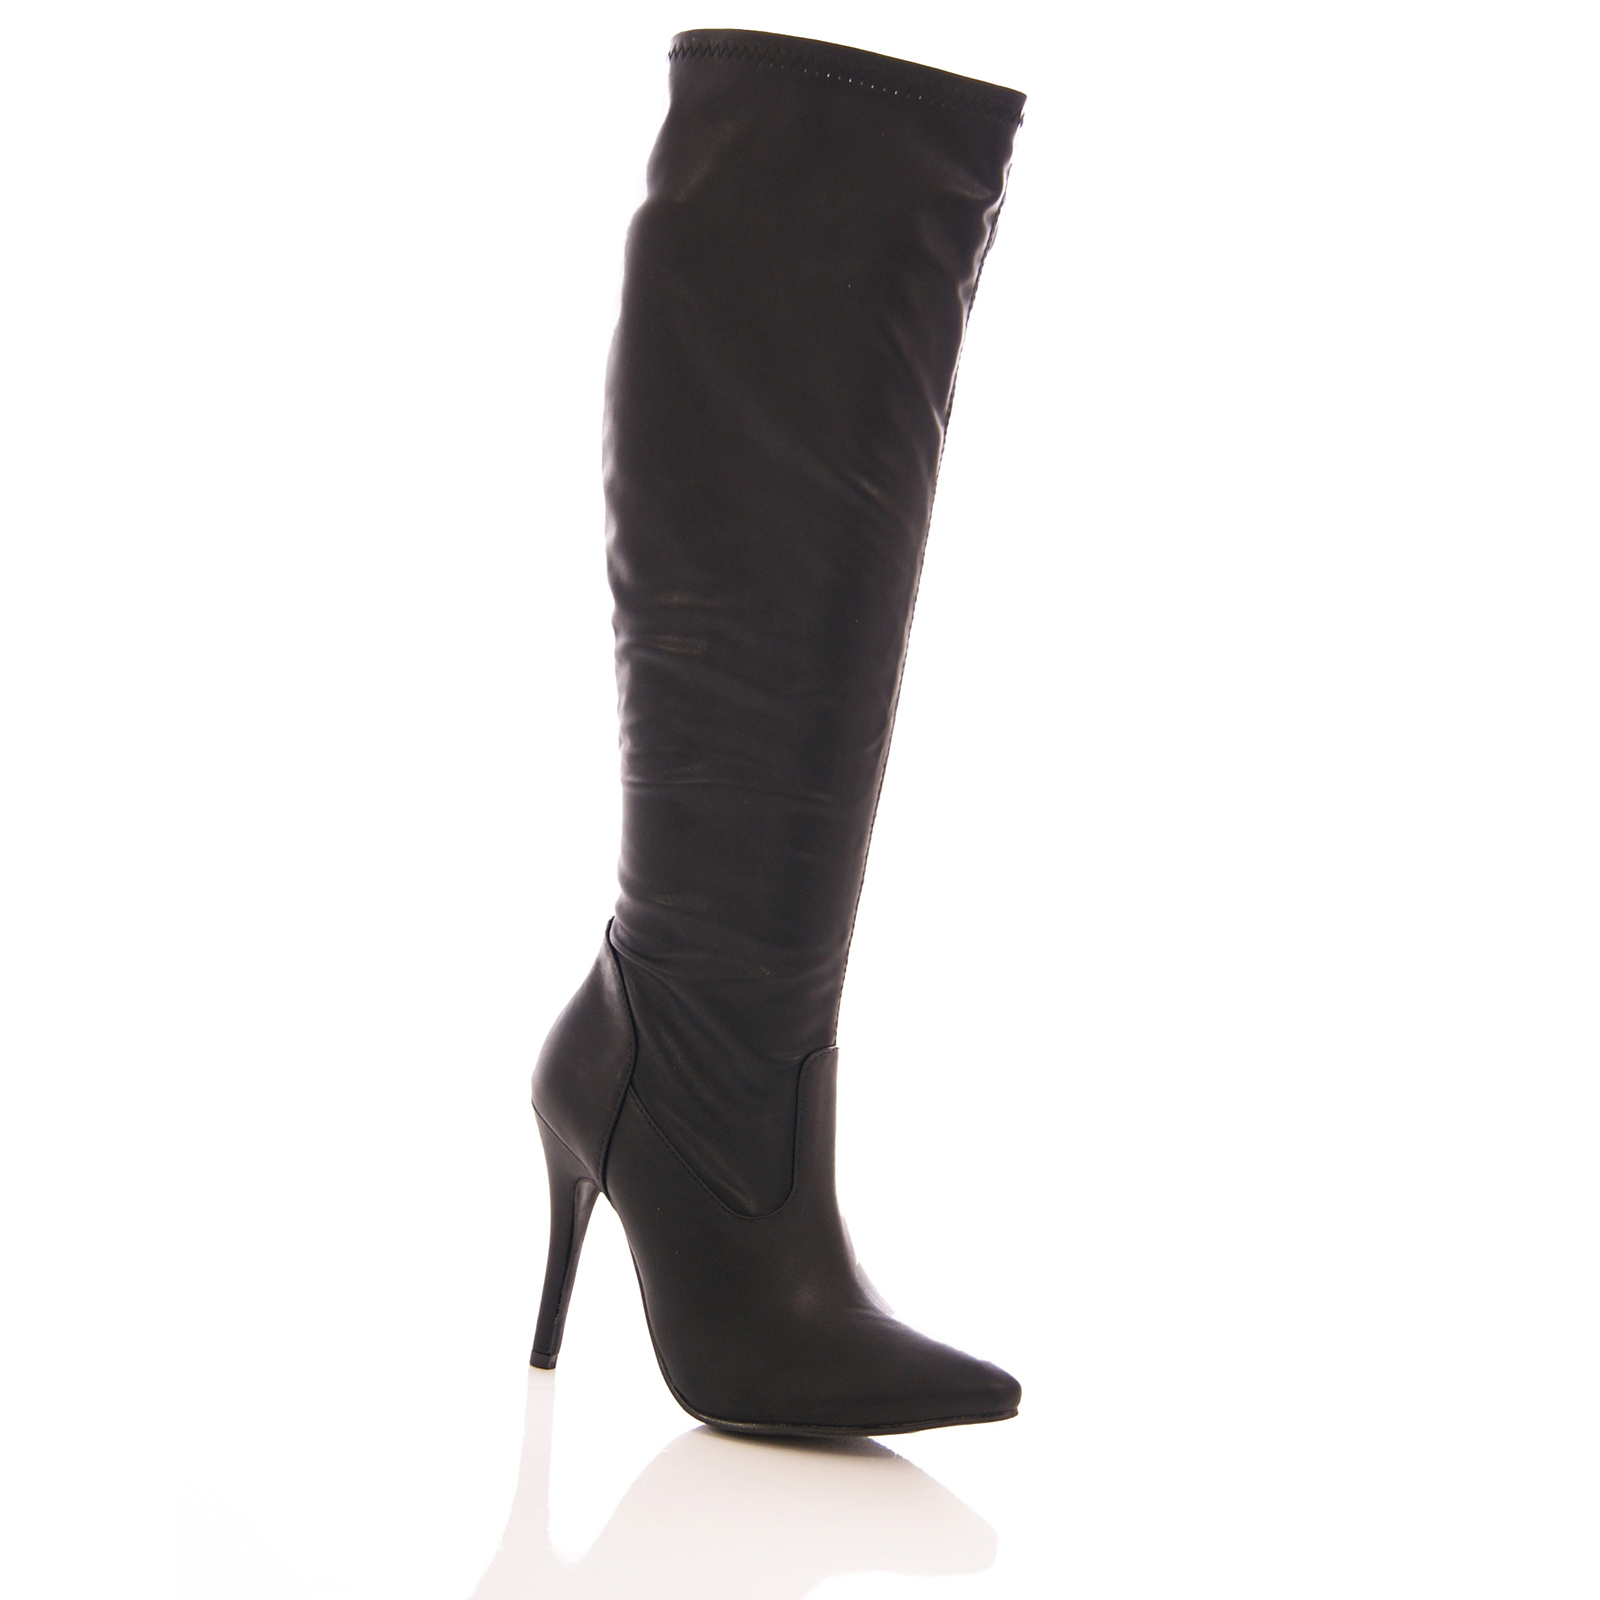 More Details Givenchy Chain-Trimmed Stretch-Leather Over-the-Knee Boot, Black Details Givenchy stretch-leather boot with silvertone hardware. Flat heel with chain inset. Round toe. Tonal topstitching. Over-the-knee silhouette. Back zip eases dress. Chain-trimmed welt. Smooth outsole.